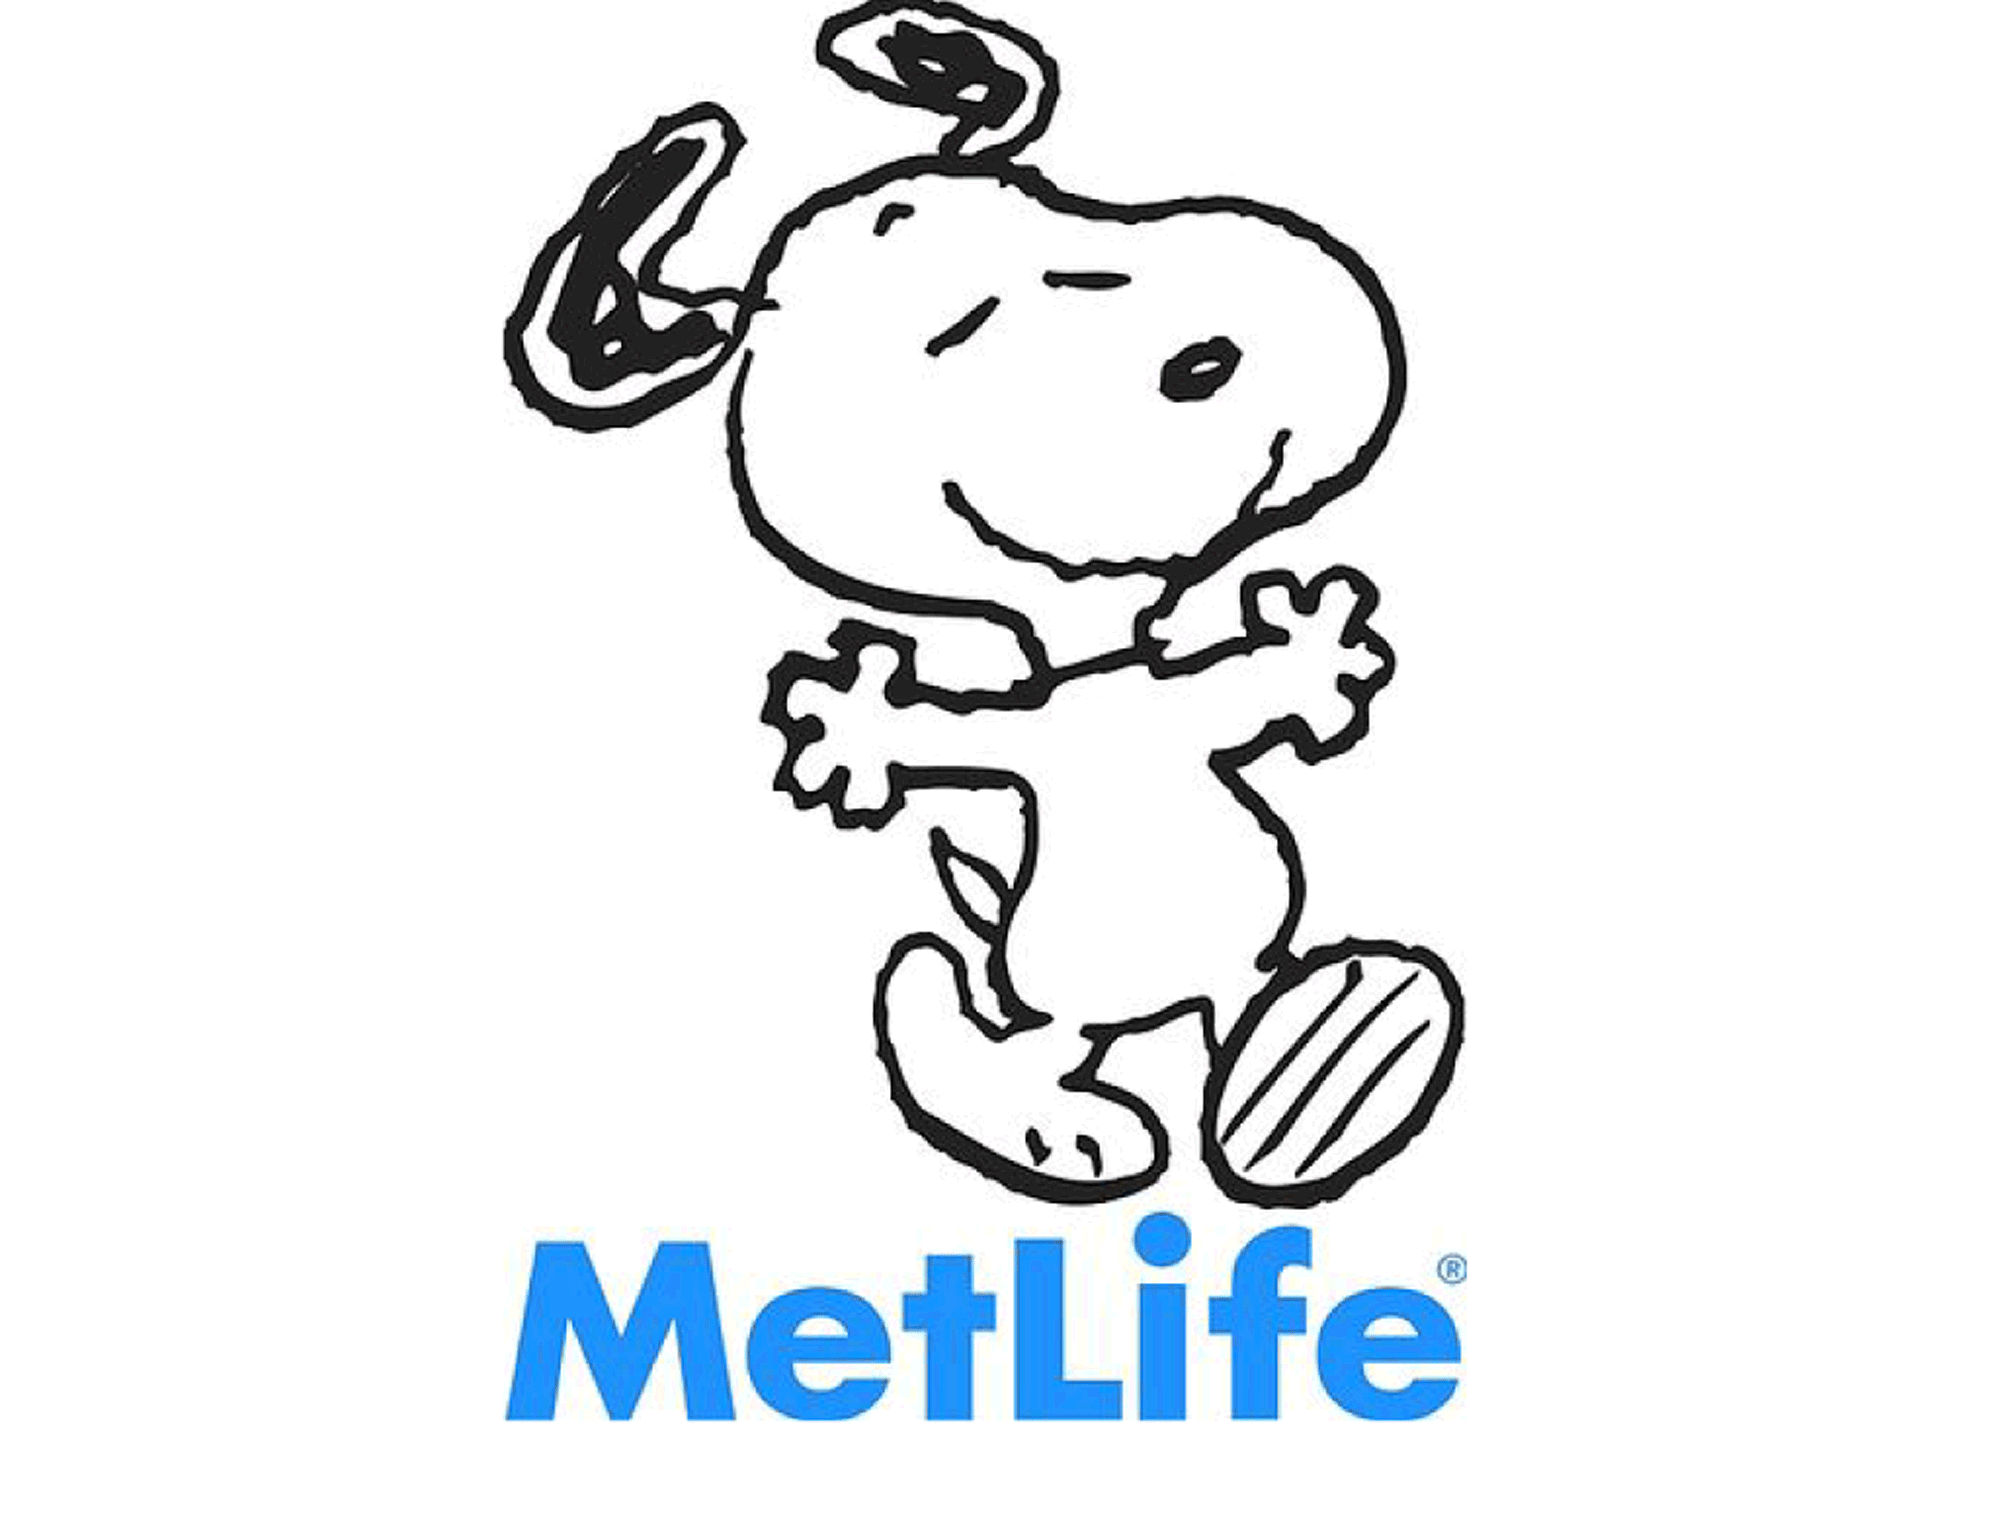 Met Life with Snoopy